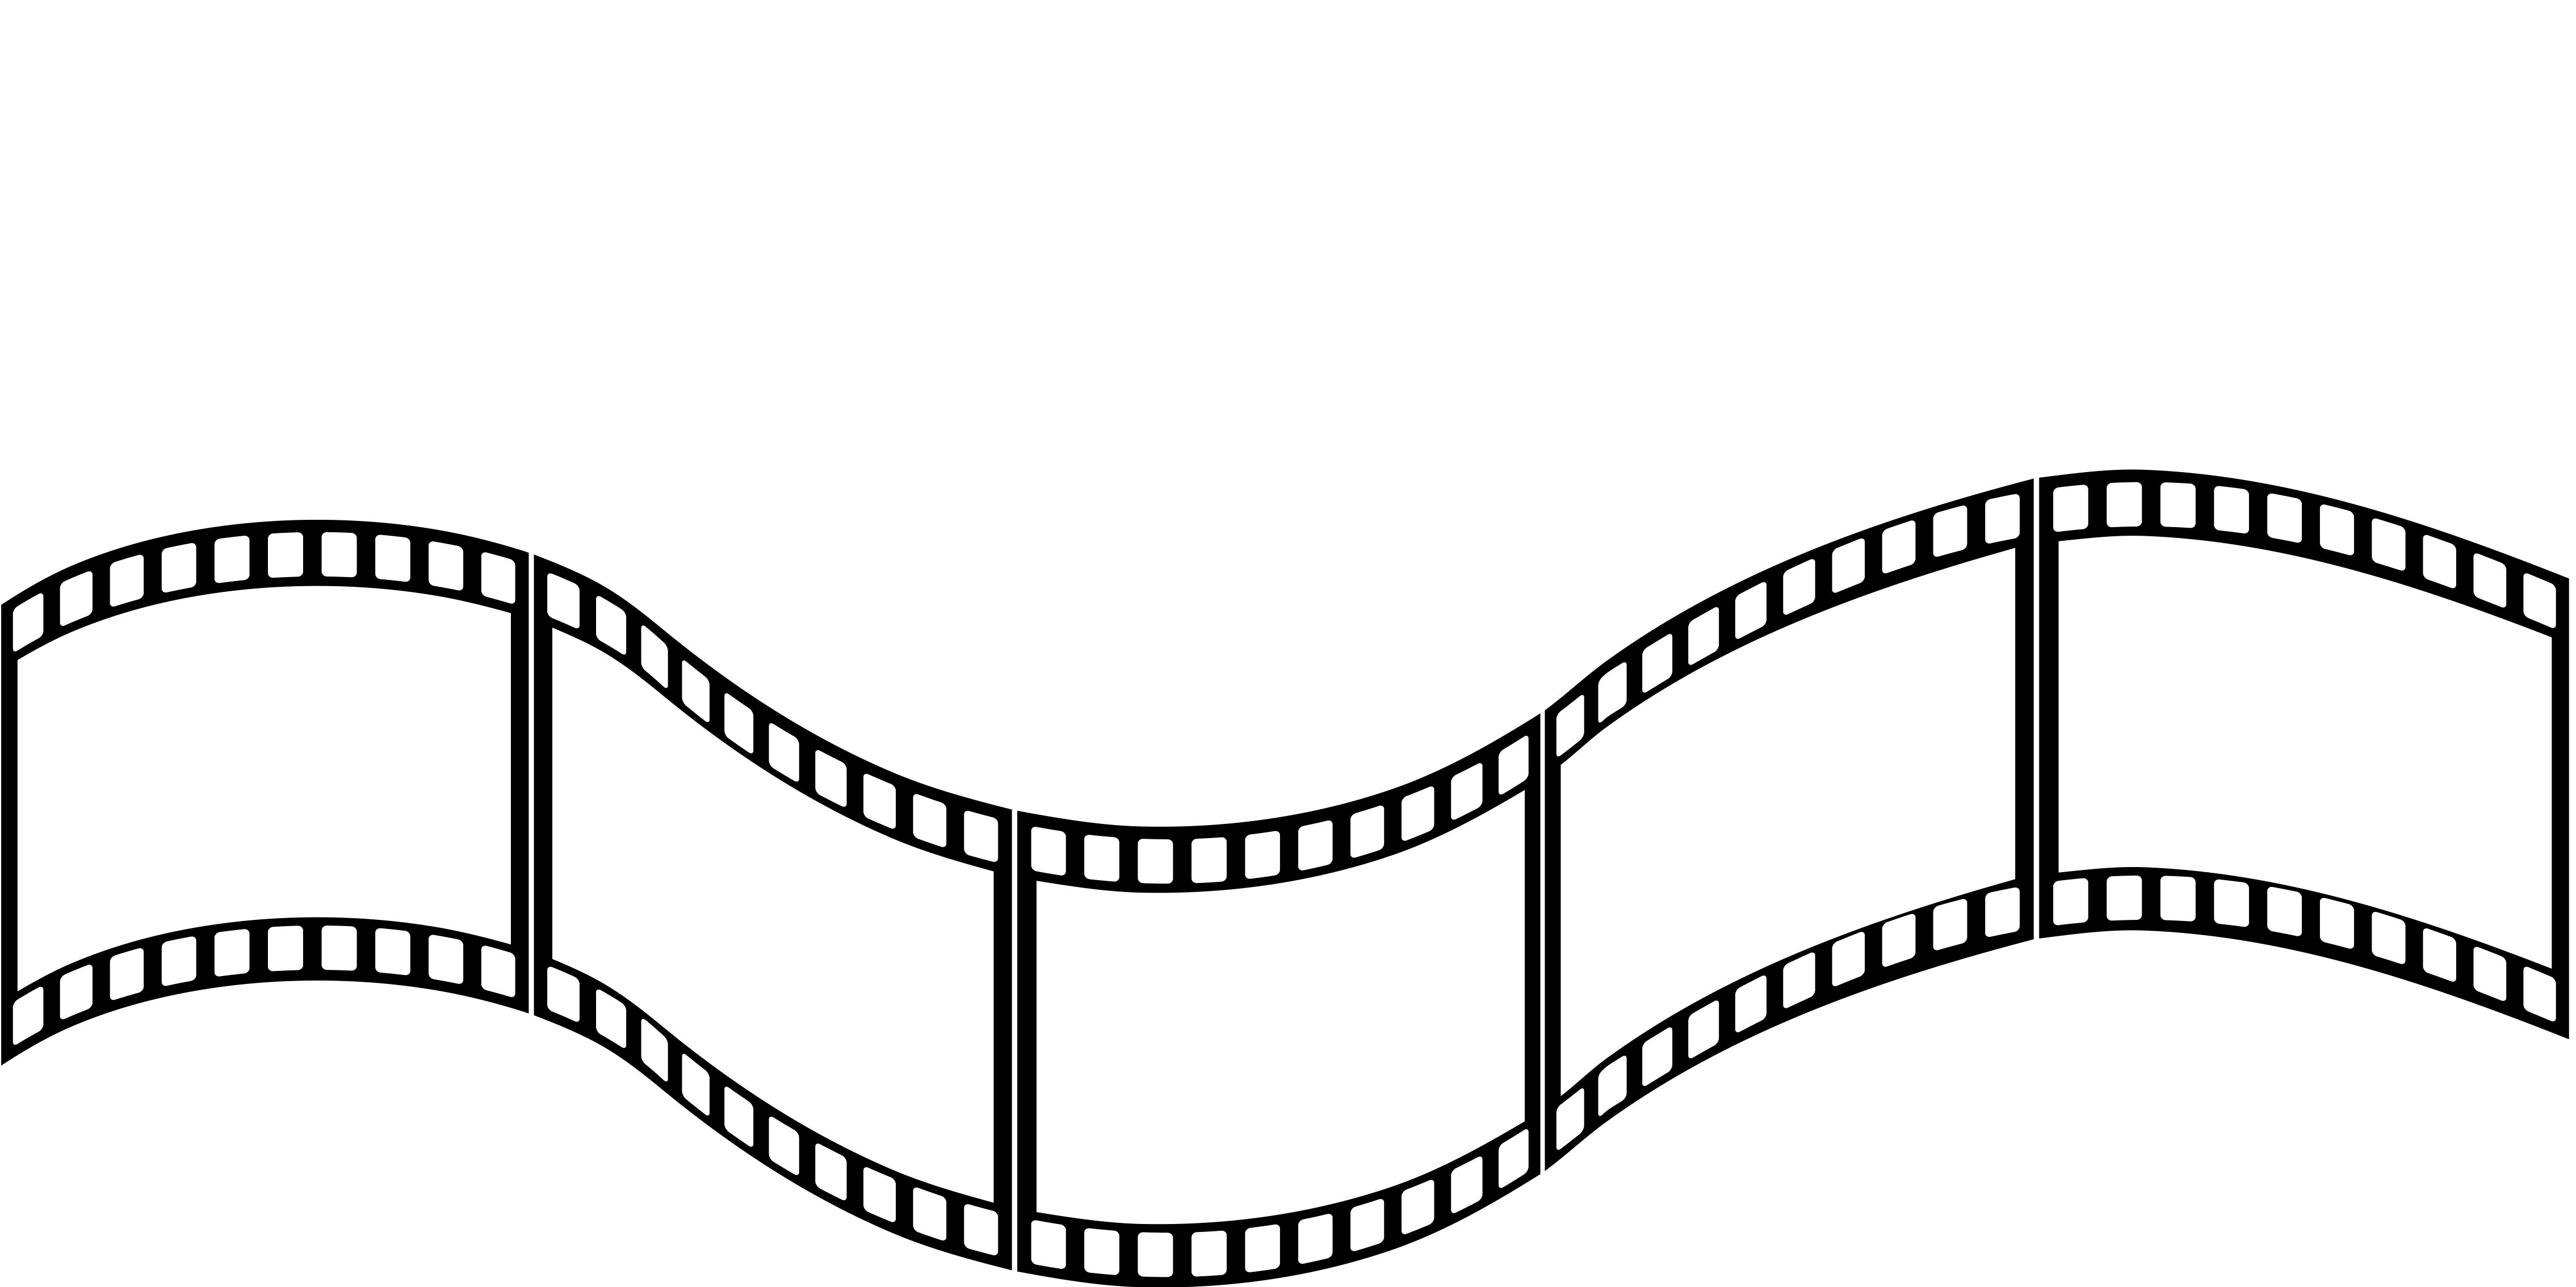 37 Film Reel Png Free Cliparts That You Can Download To